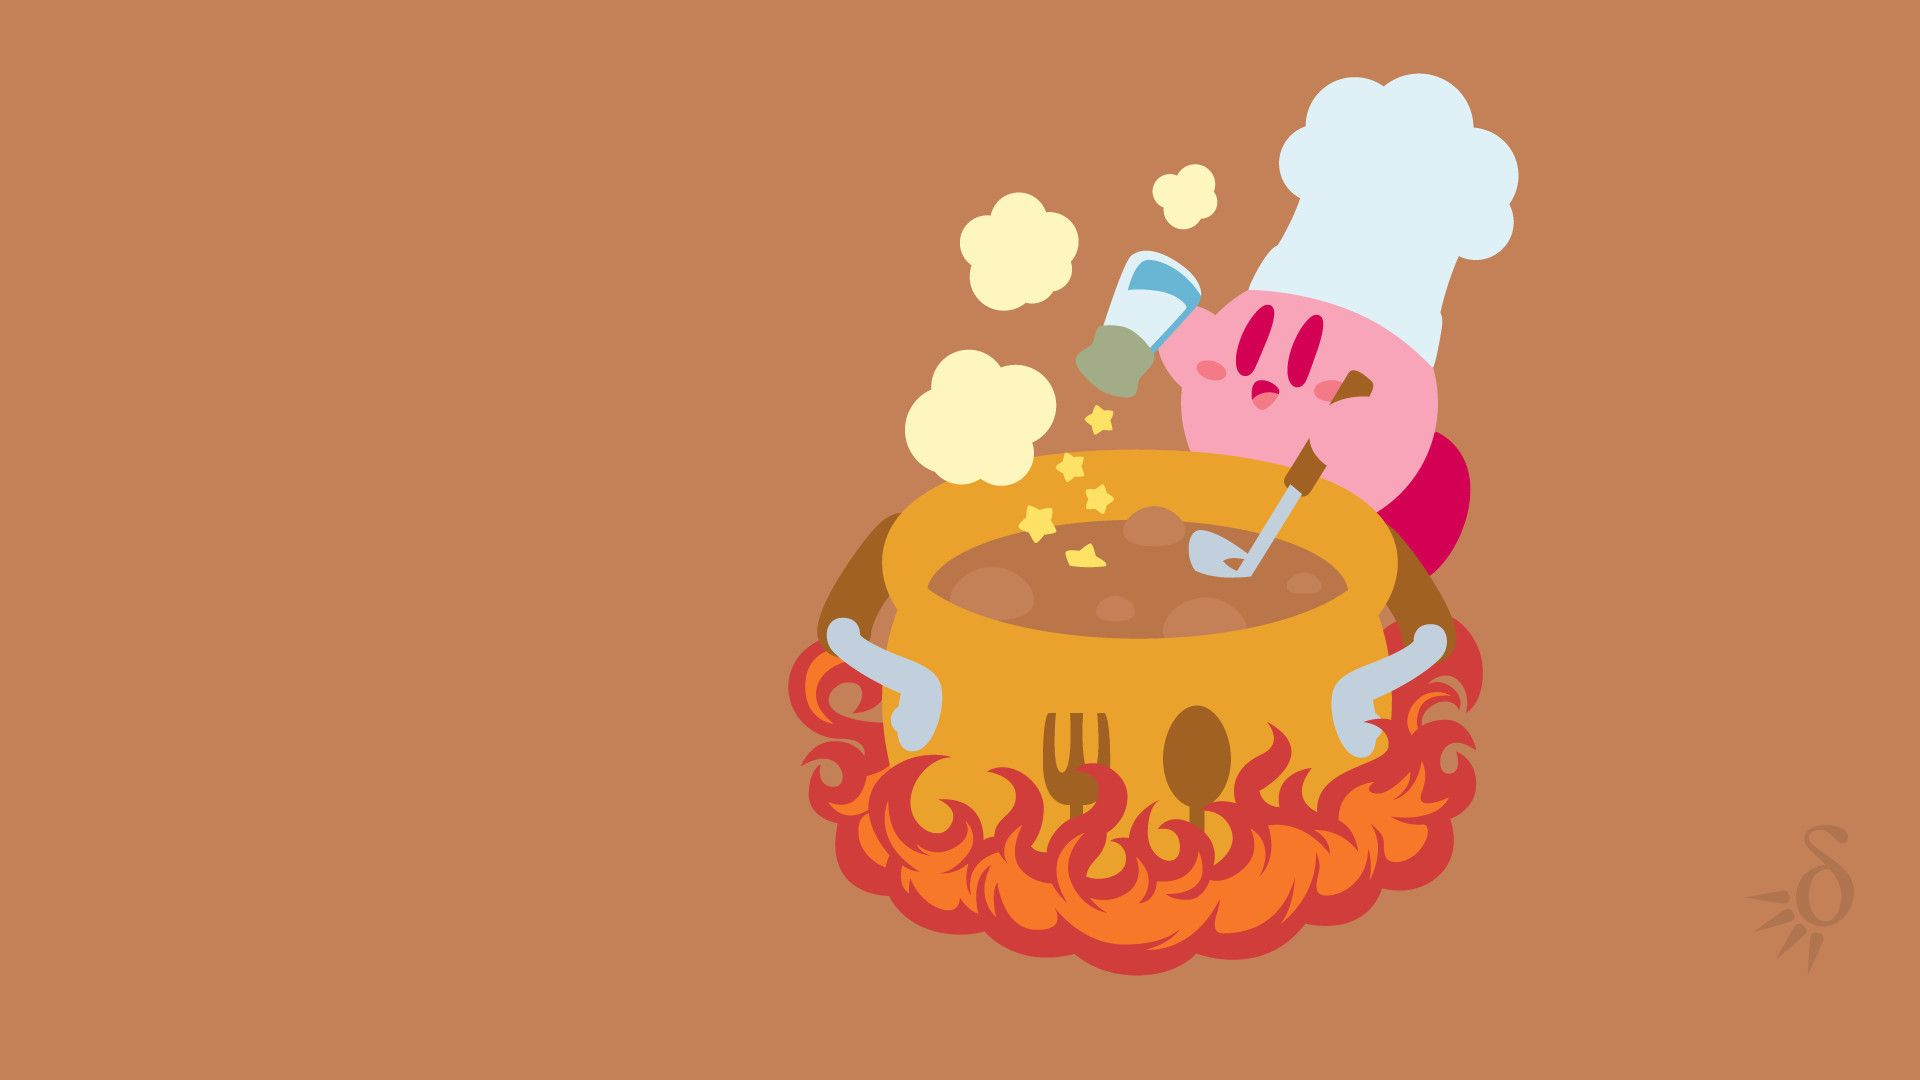 Kirby Background Wallpaper